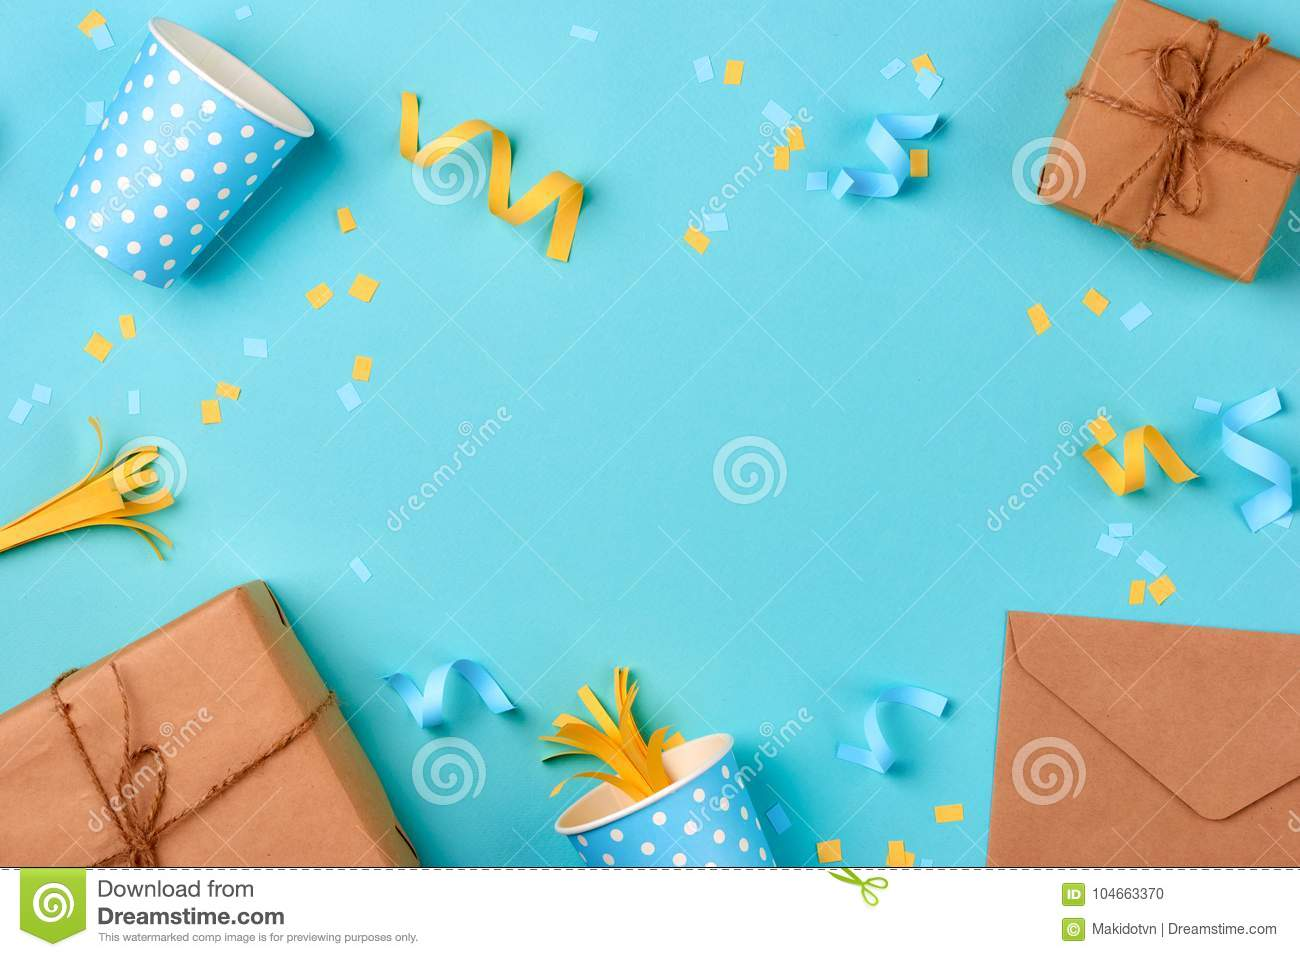 Gift box and birthday party things on a blue background